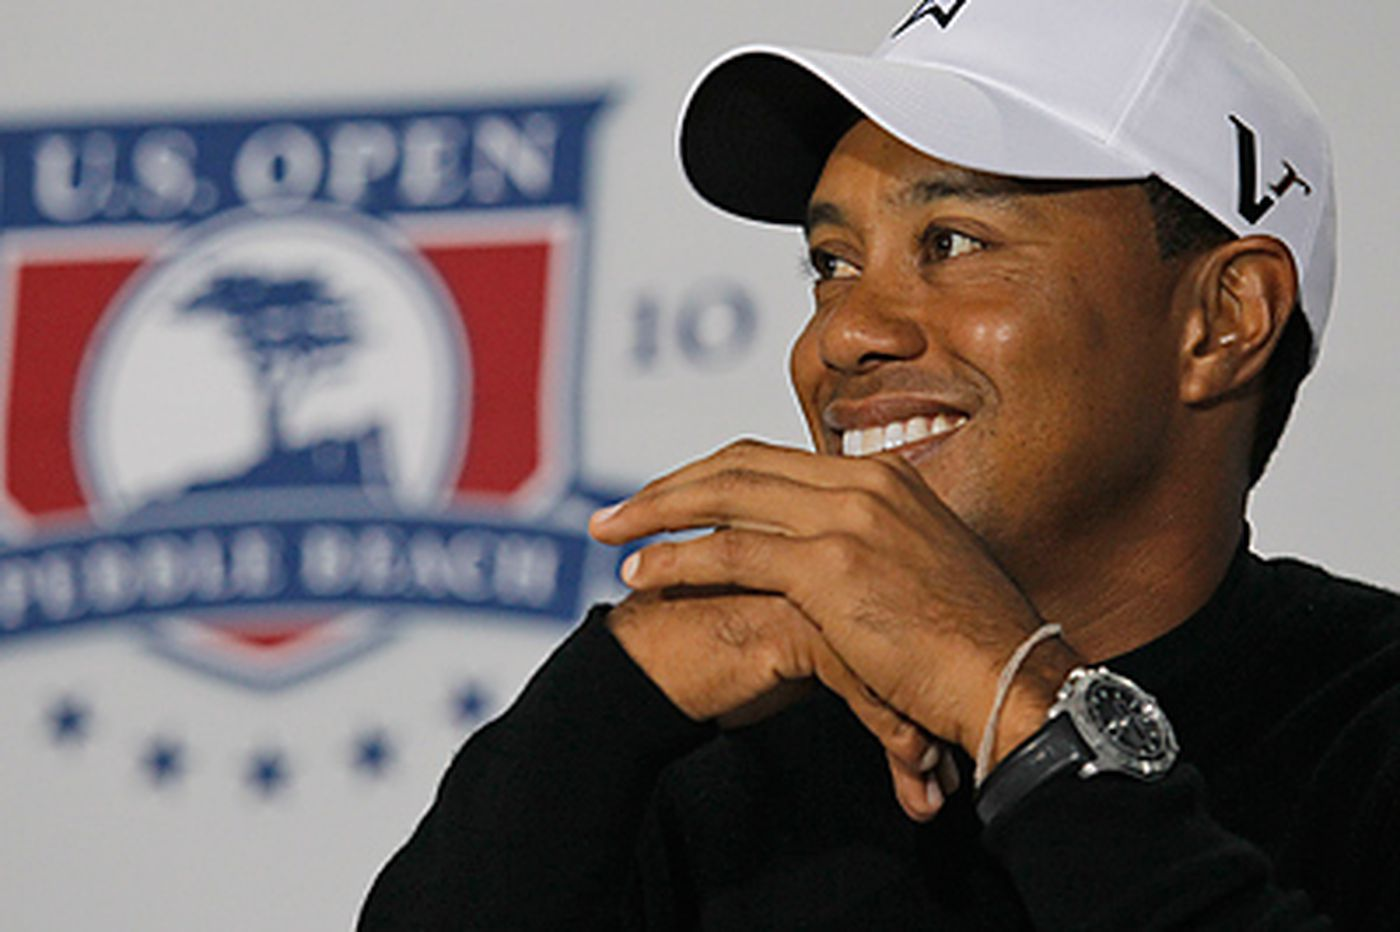 Tiger looks to begin next chapter of life where his legend began